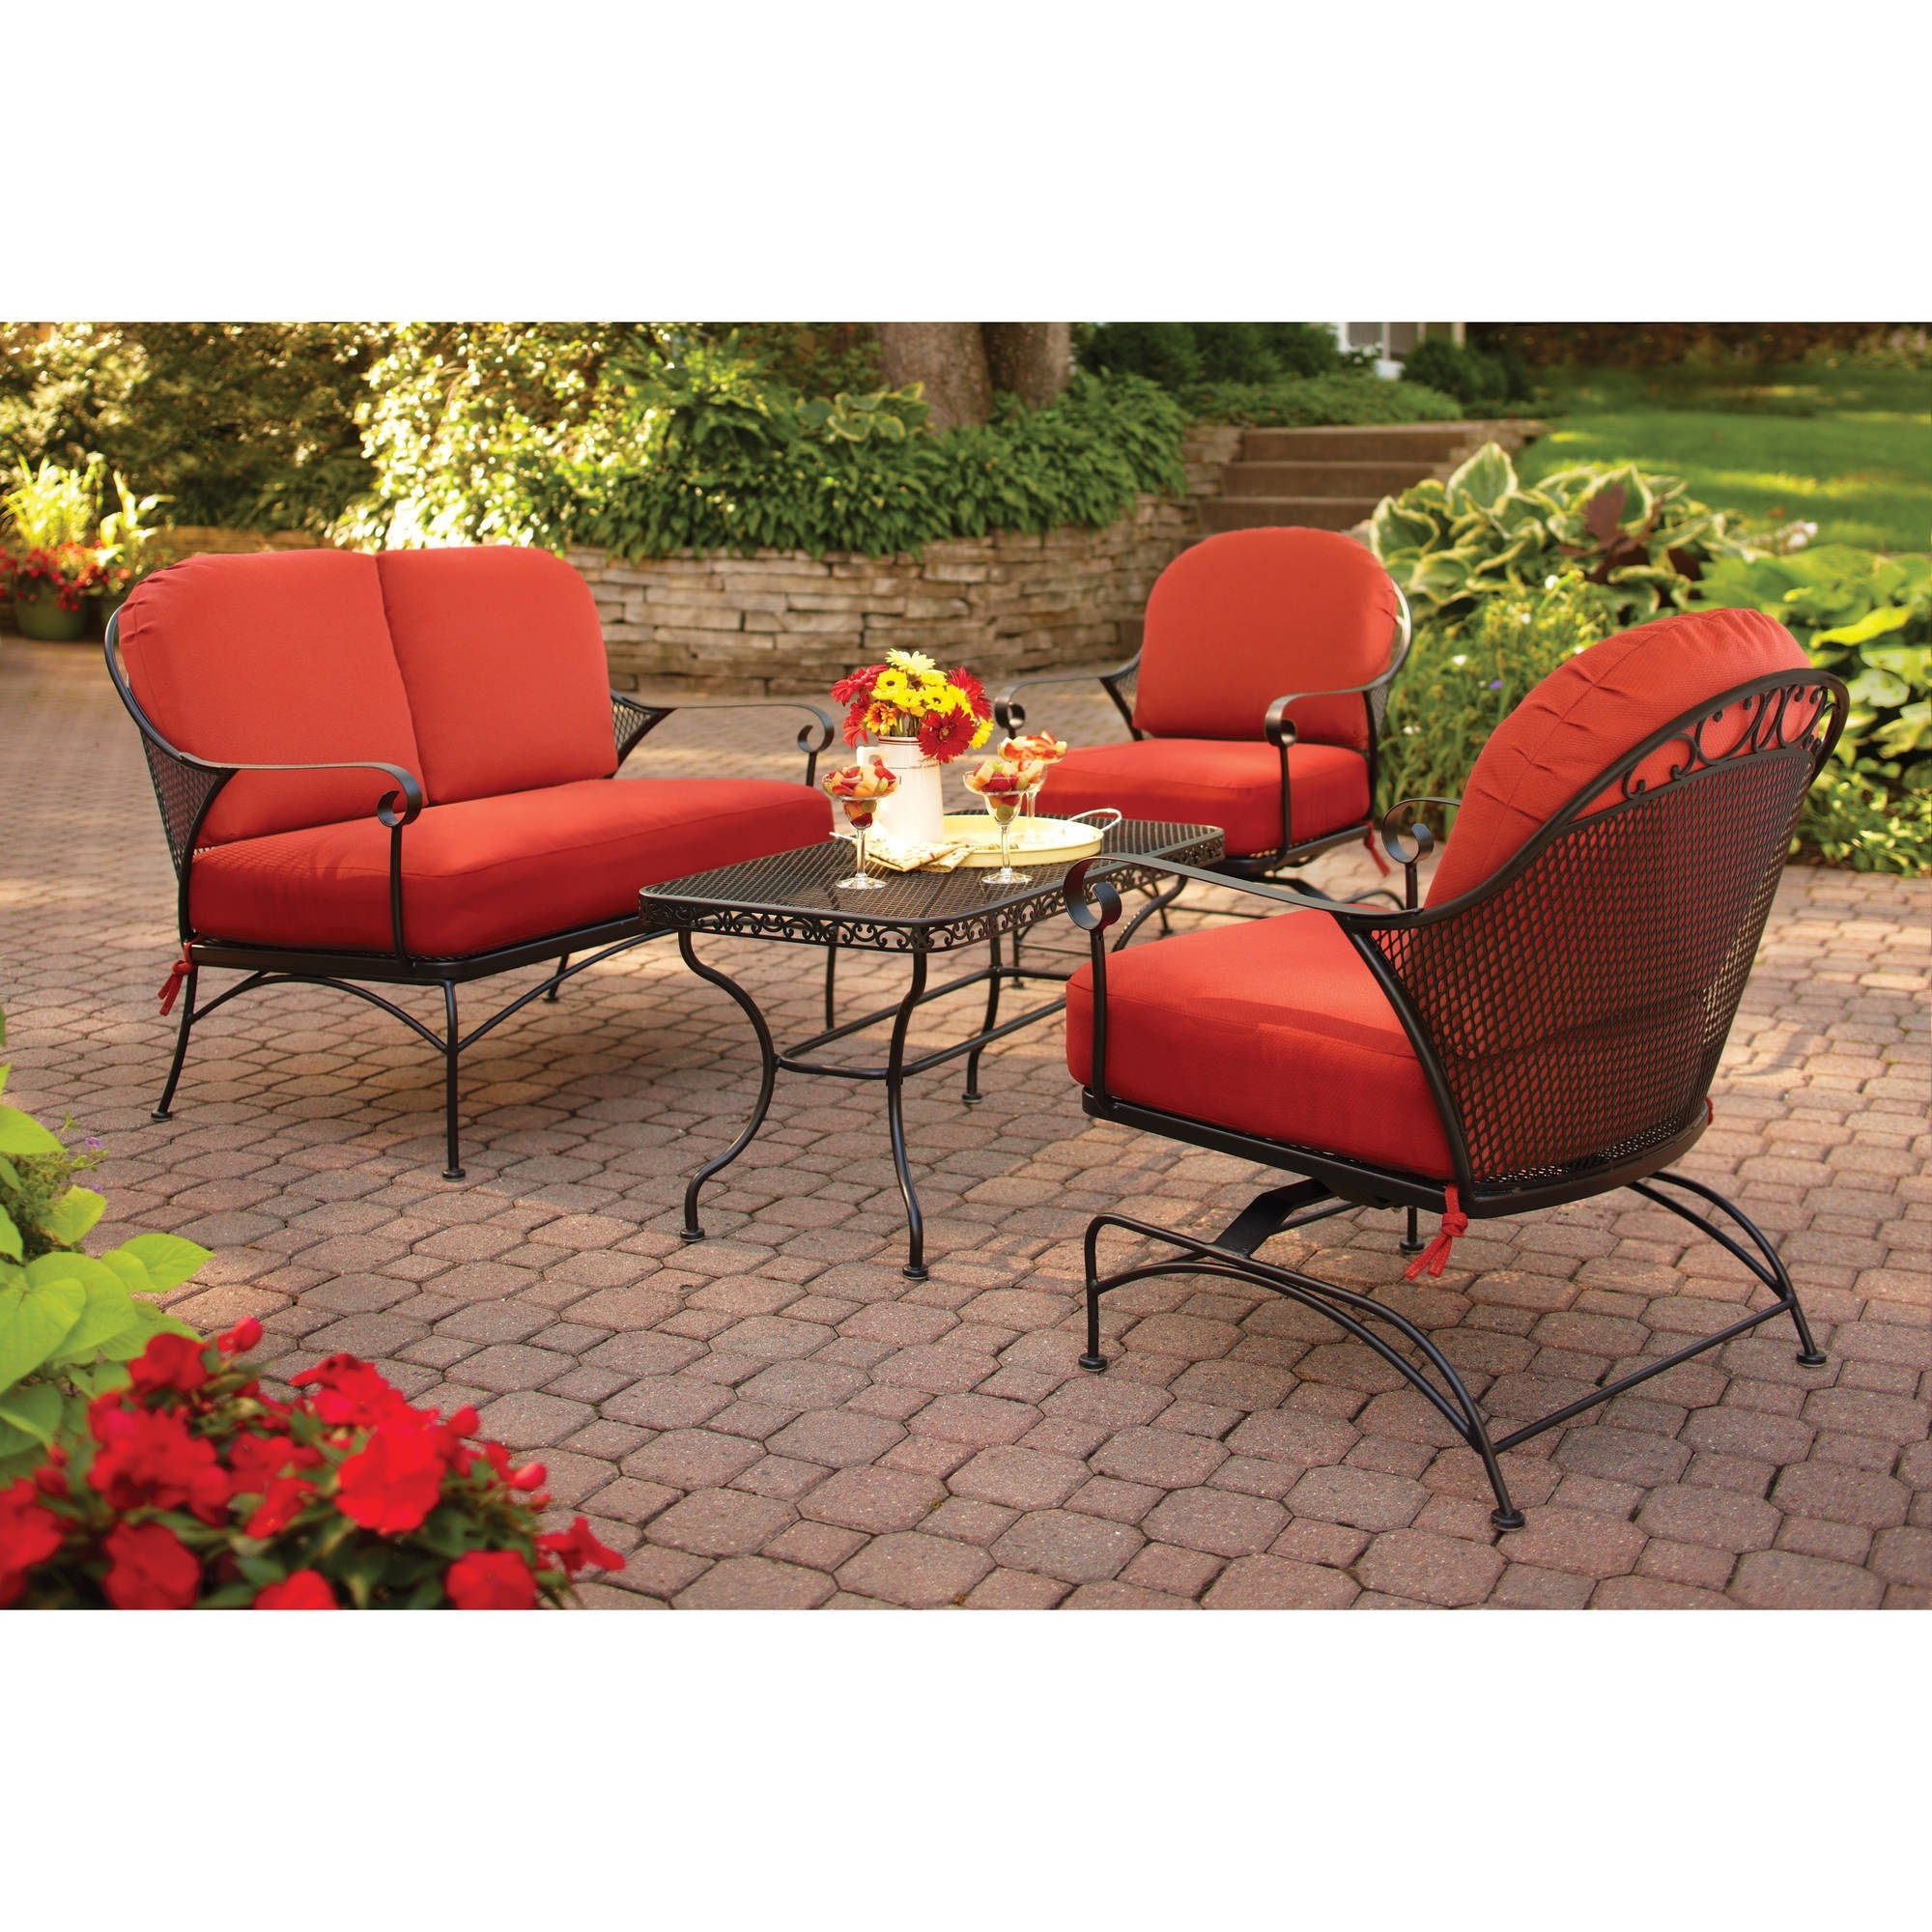 Better Homes And Gardens Clayton Court 4 Piece Patio Conversation Throughout Most Popular Walmart Patio Furniture Conversation Sets (View 14 of 15)